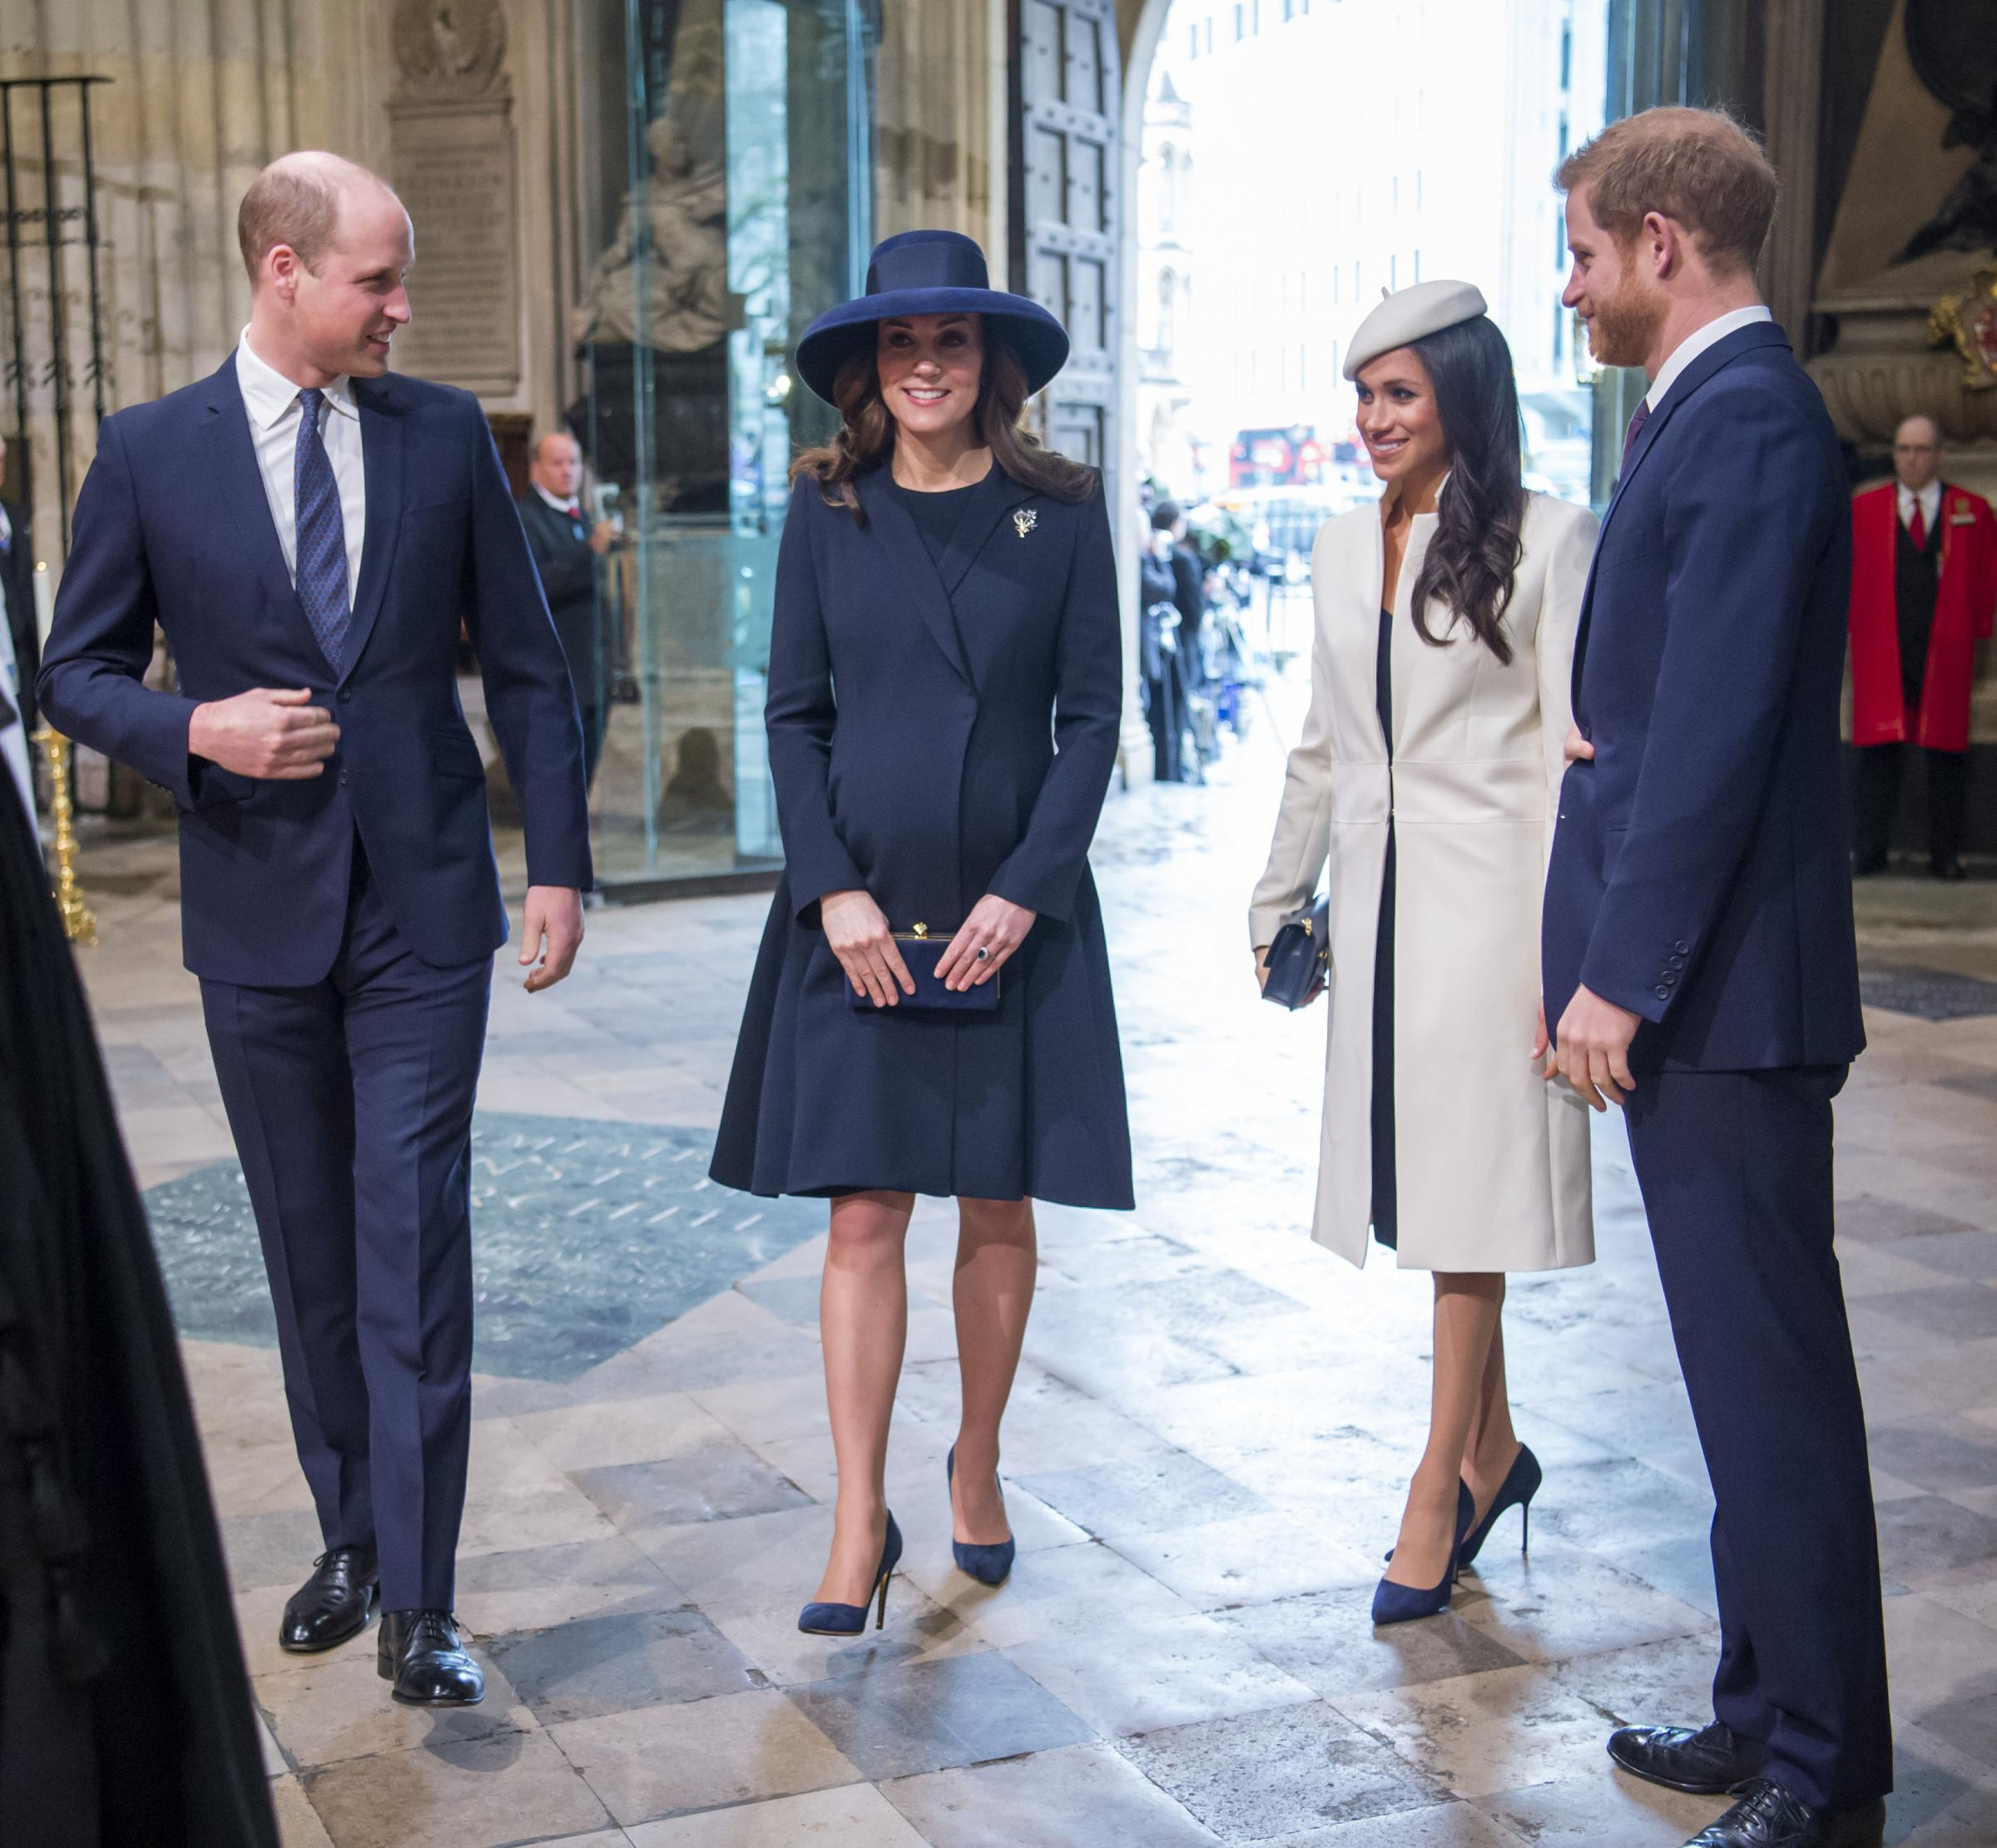 The Duke and Duchess of Cambridge, Prince Harry and Meghan Markle attend the Commonwealth Service at Westminster Abbey, London. PRESS ASSOCIATION Photo. Picture date: Monday March 12, 2018. See PA story ROYAL Commonwealth. Photo credit should read: Paul G